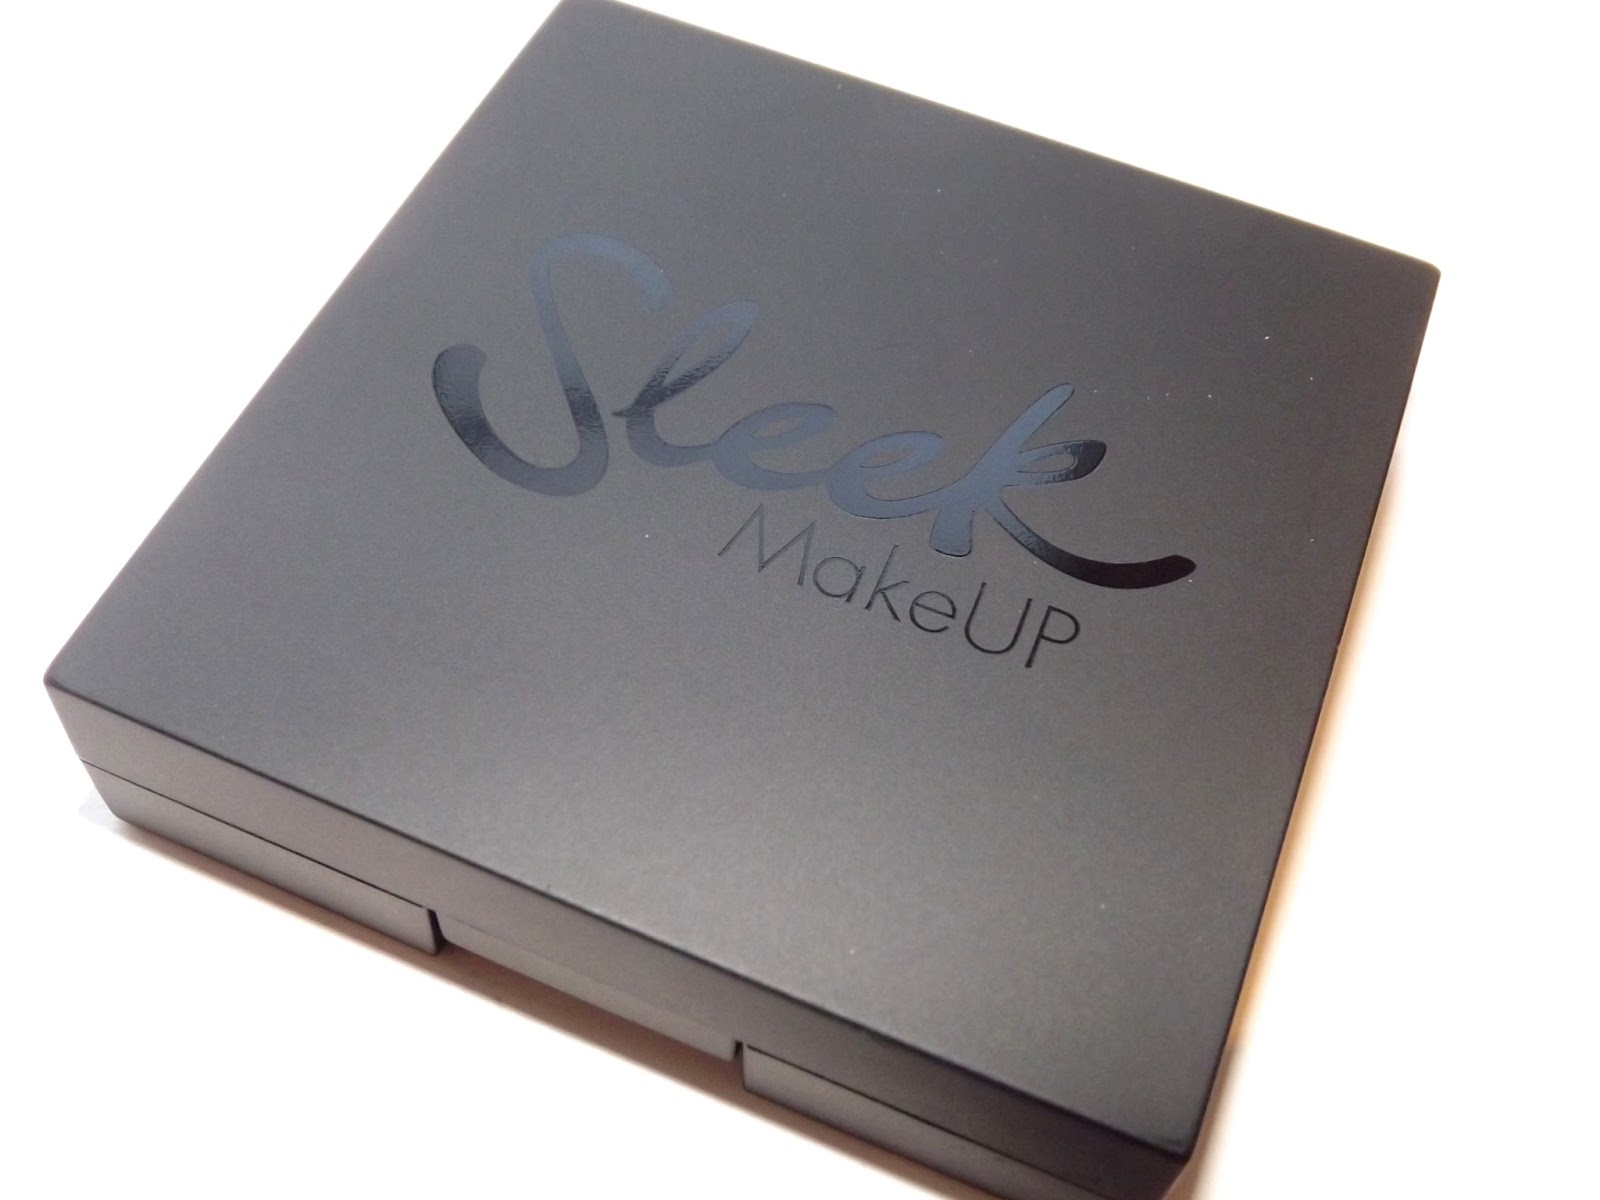 Stephanie Maverick: Sleek Brow Kit | Dark 818 | Review